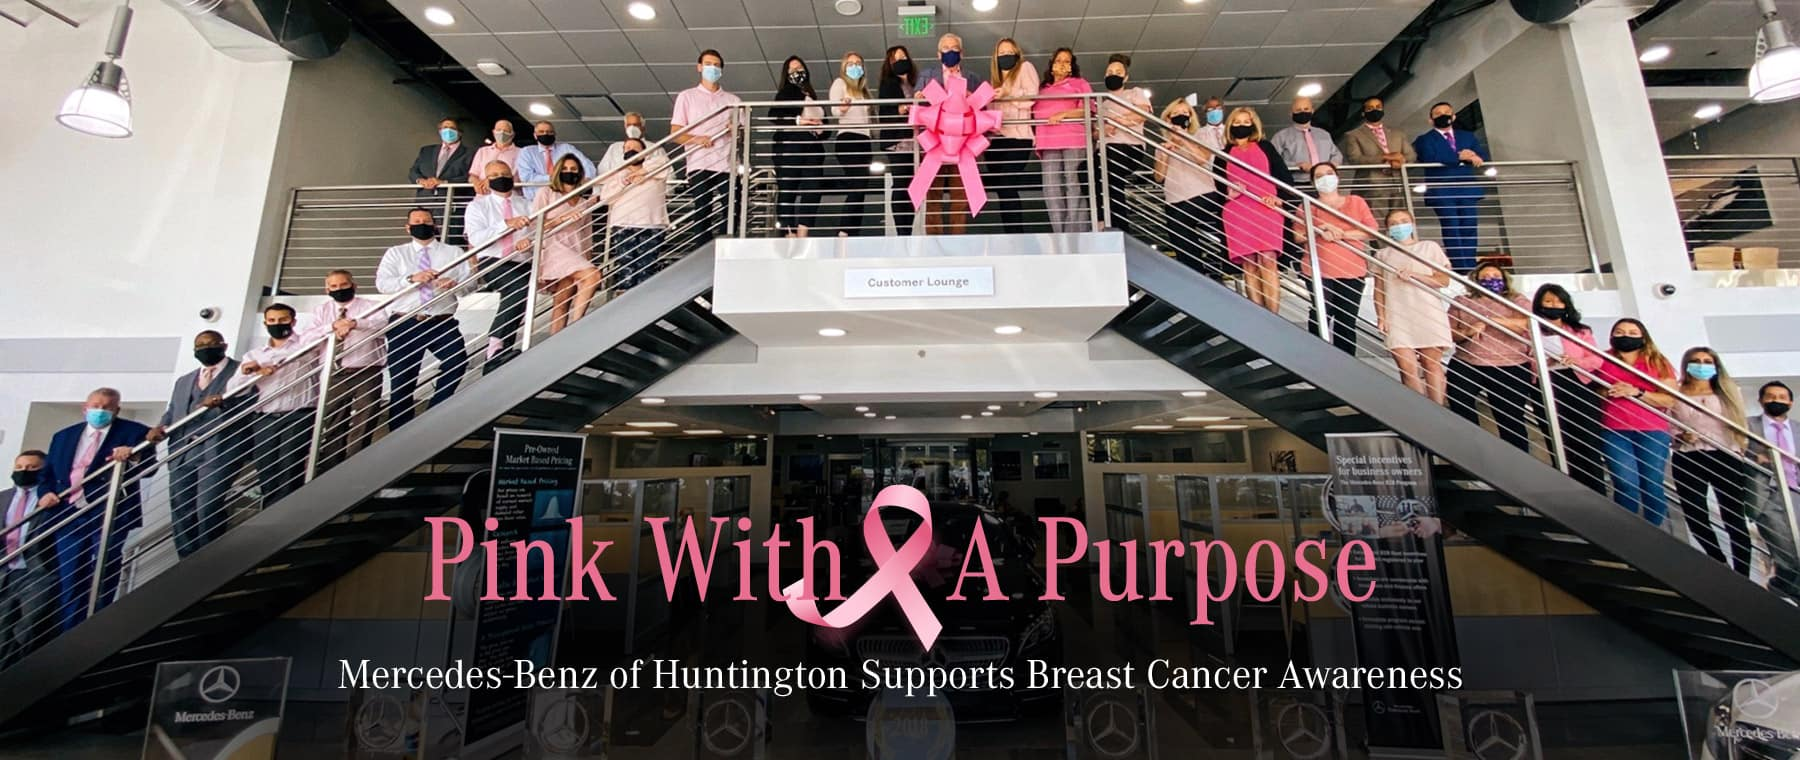 Homepage-Slider-MBH-Breast-Cancer-Awareness (1)